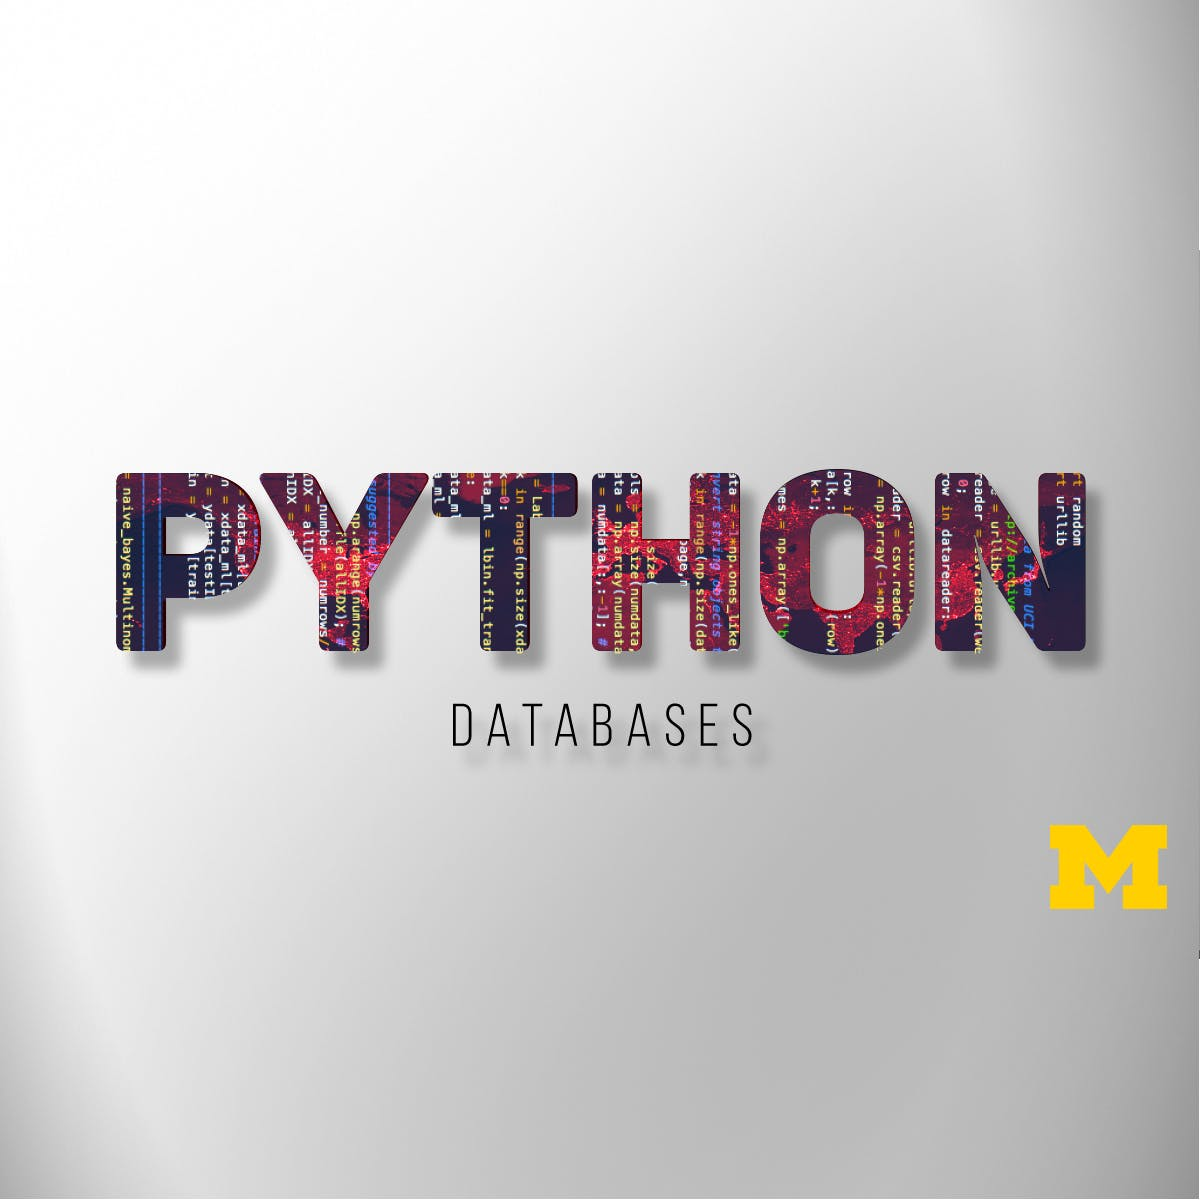 Using Databases with Python